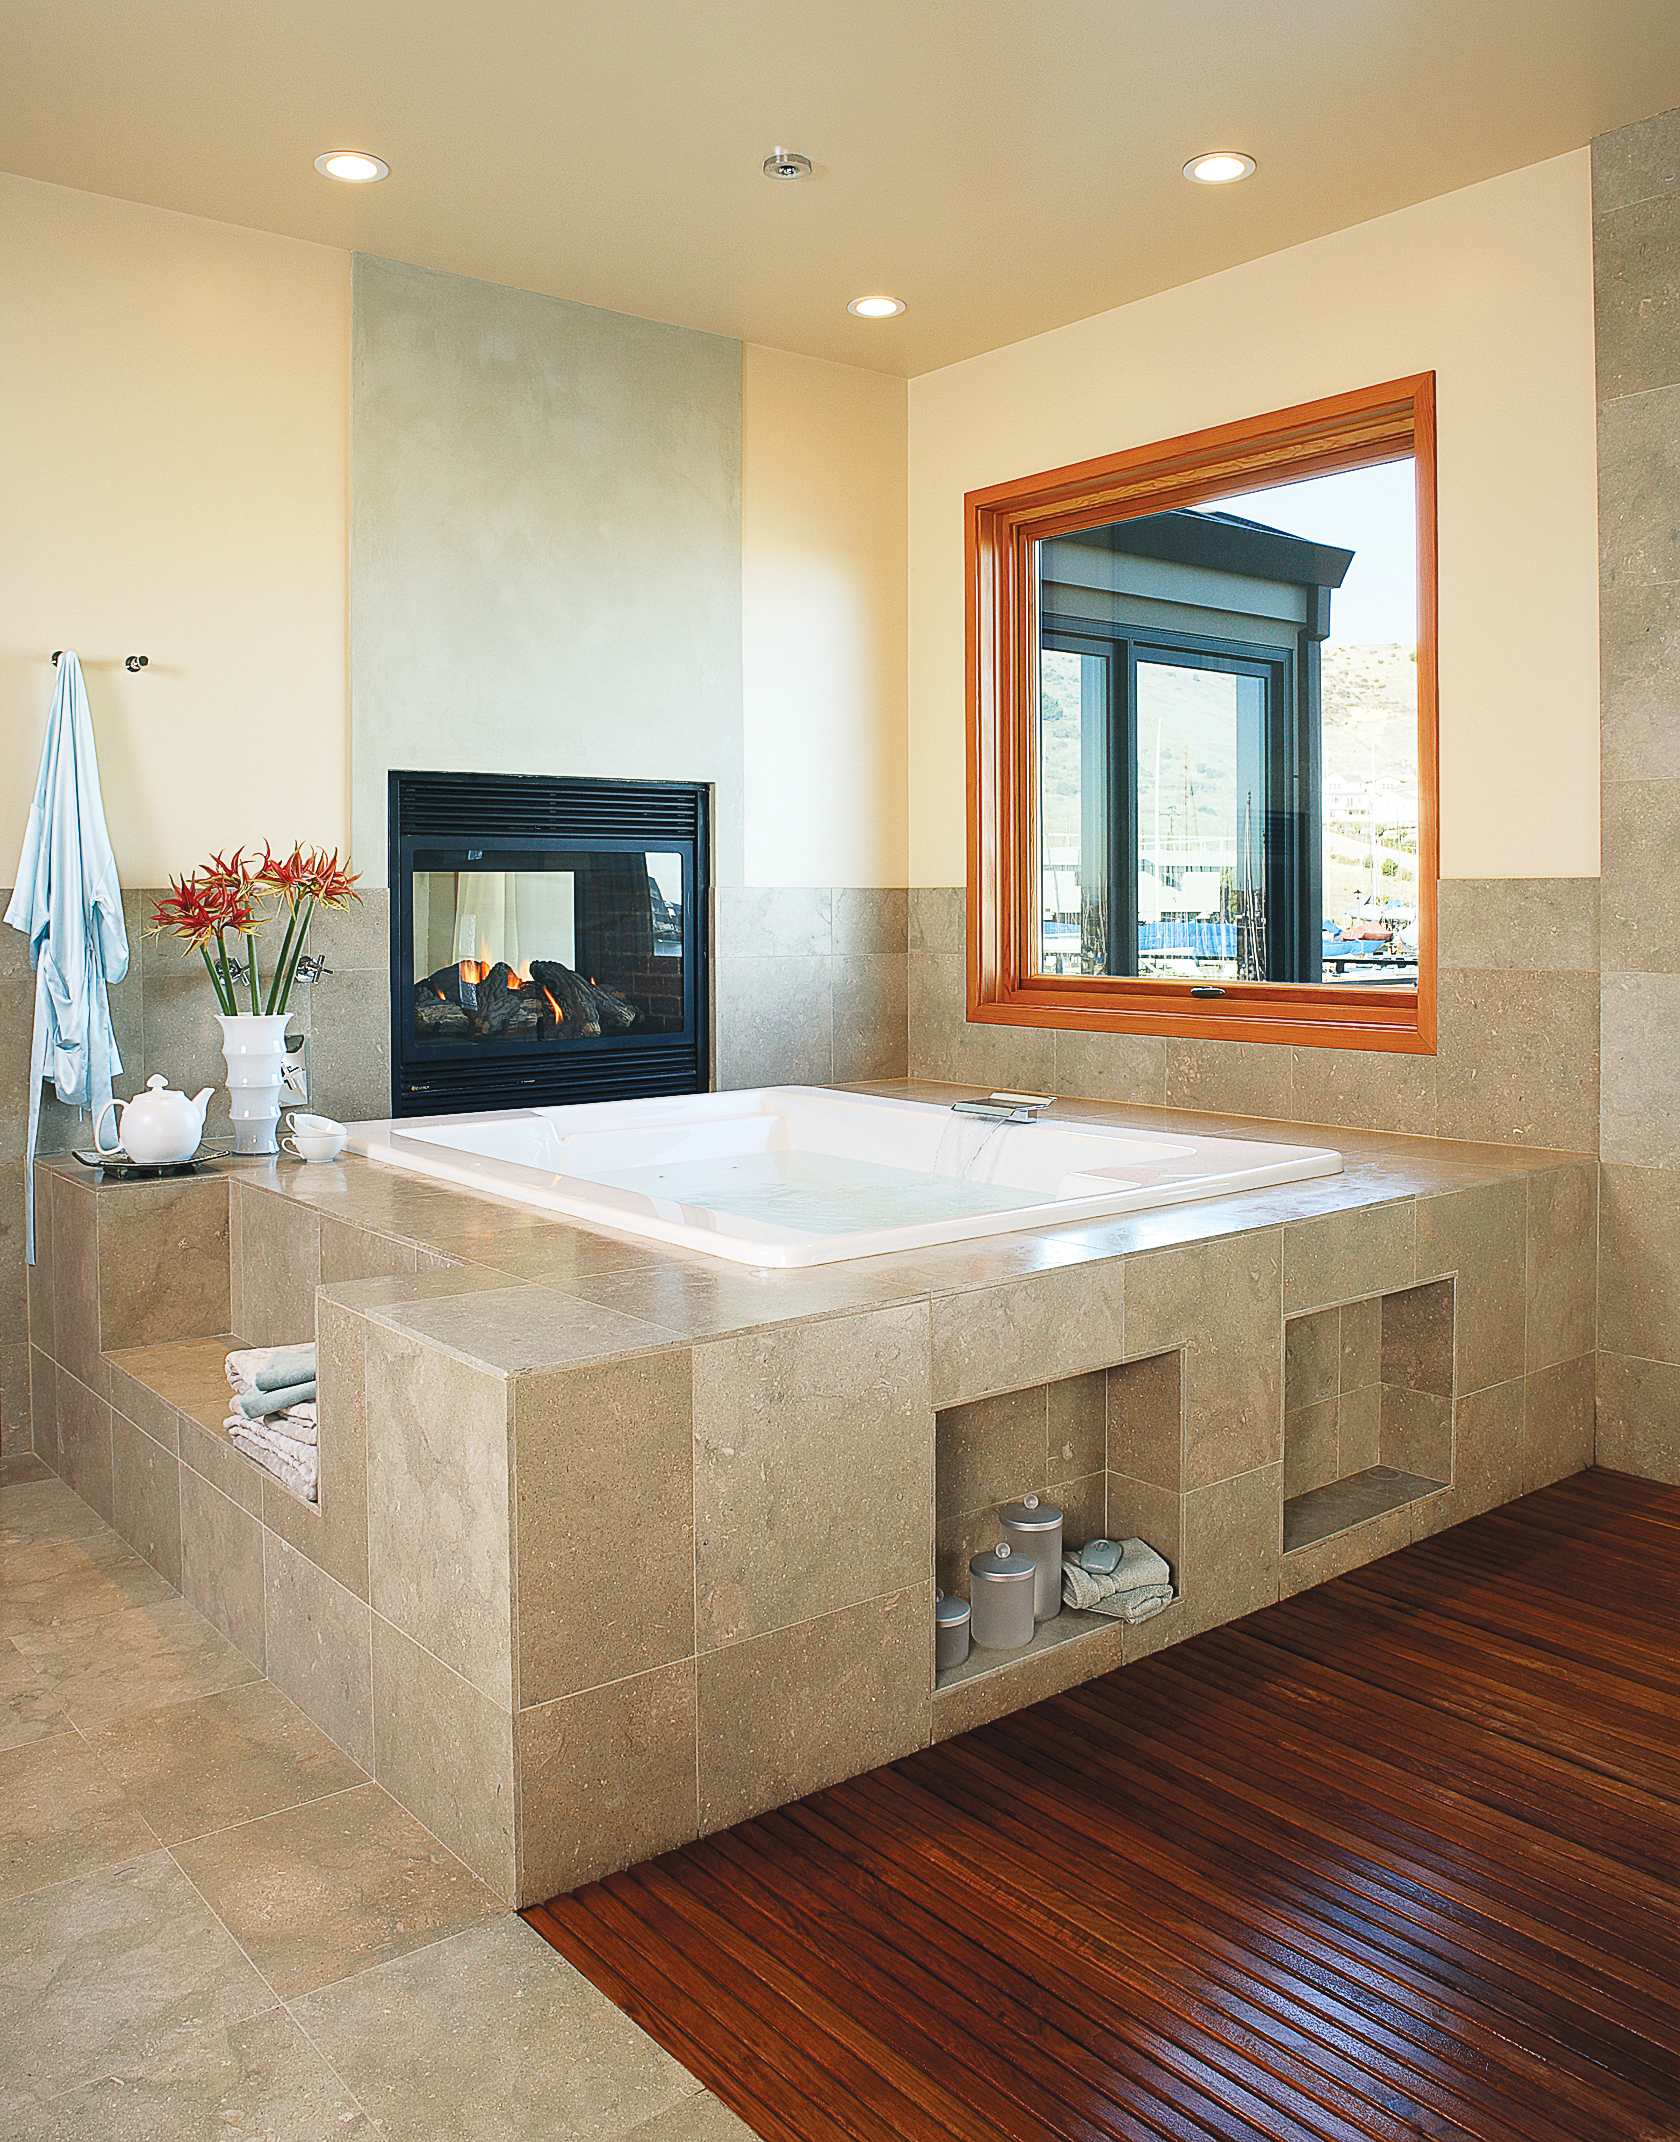 bathroom tub designs. Deck-mounted Jetted Tub With Fireplace Bathroom Designs \